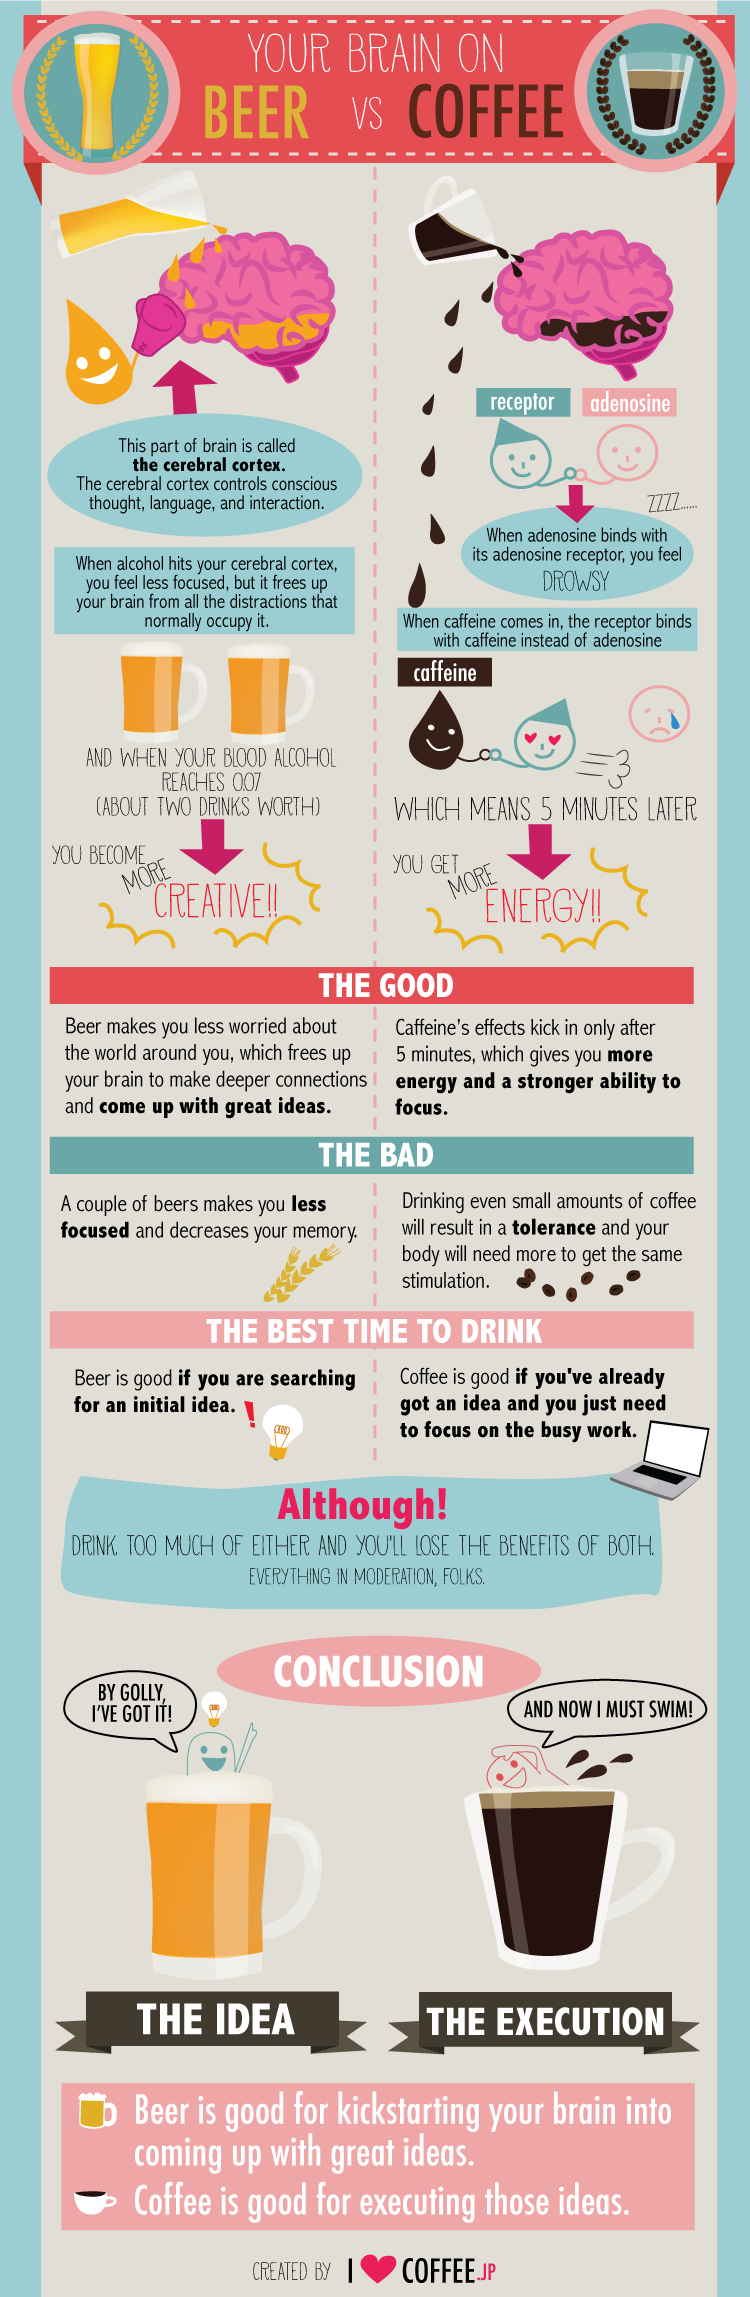 your-brain-on-coffee-vs-beer_524c5b009a6bf.png.png